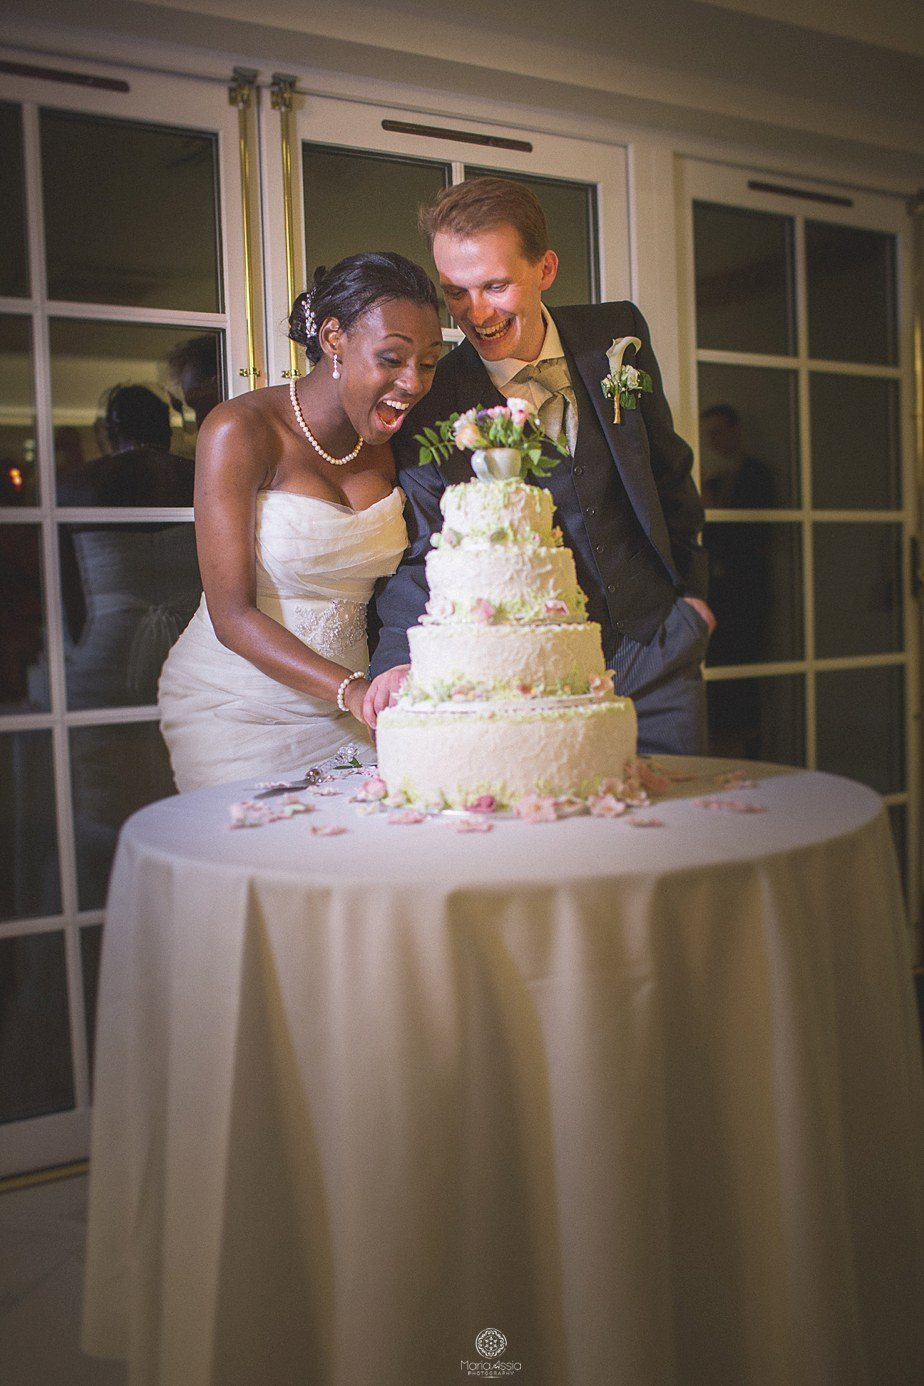 Bride and Groom cutting the cake at Froyle Park Ethnic Colourful wedding